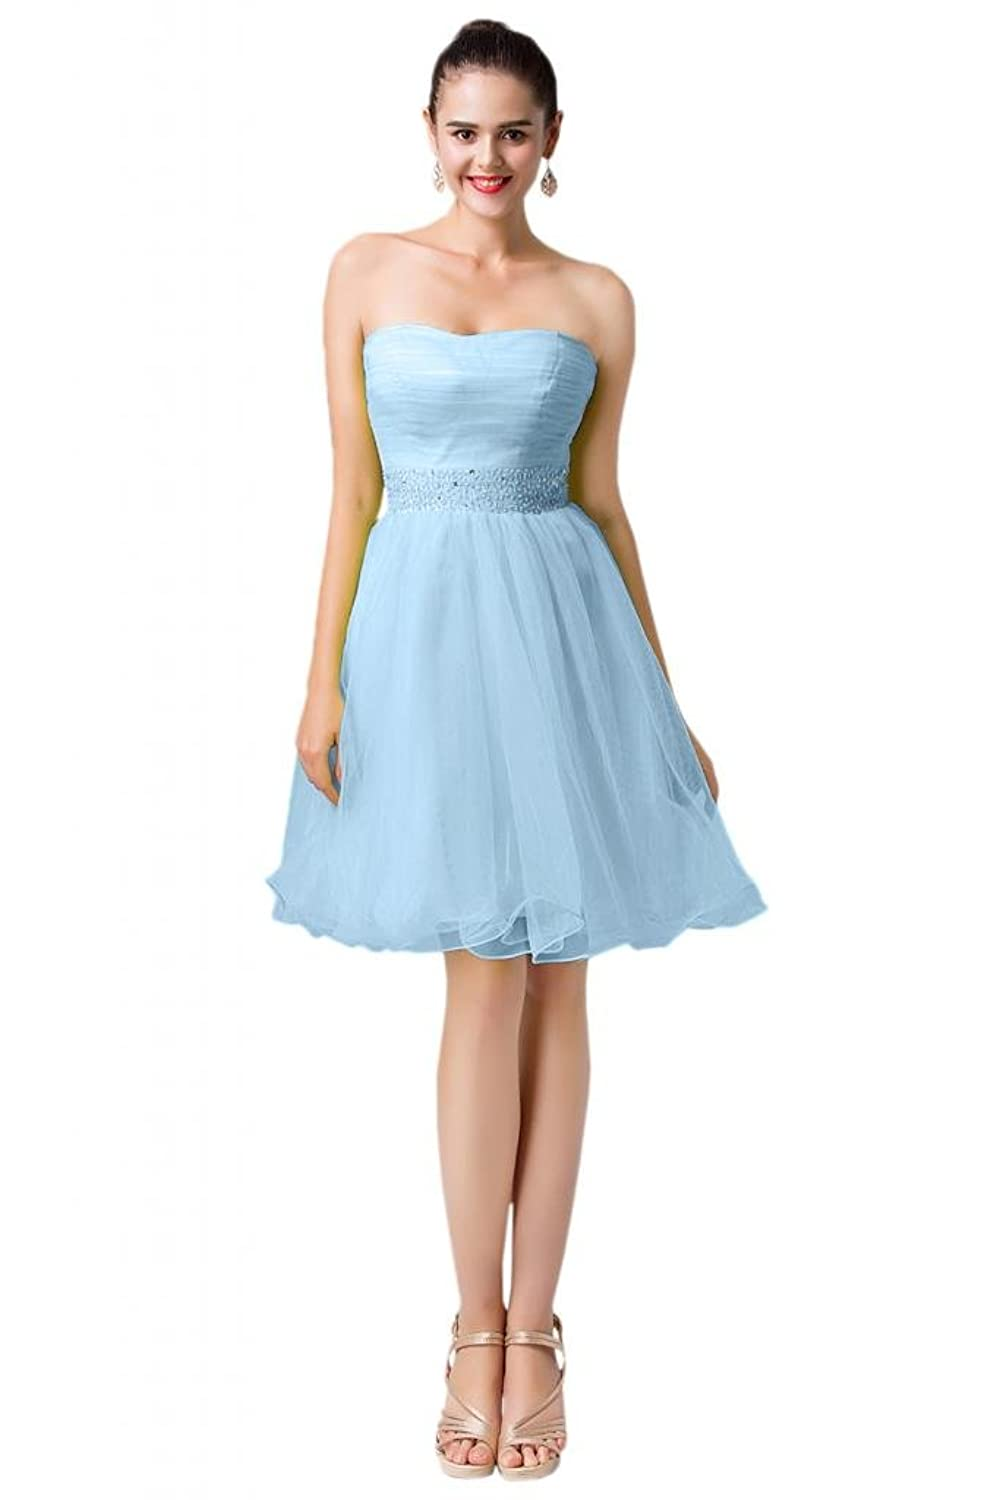 Sunvary New Arrival Girl Short Open Back Homecoming Party Dresses